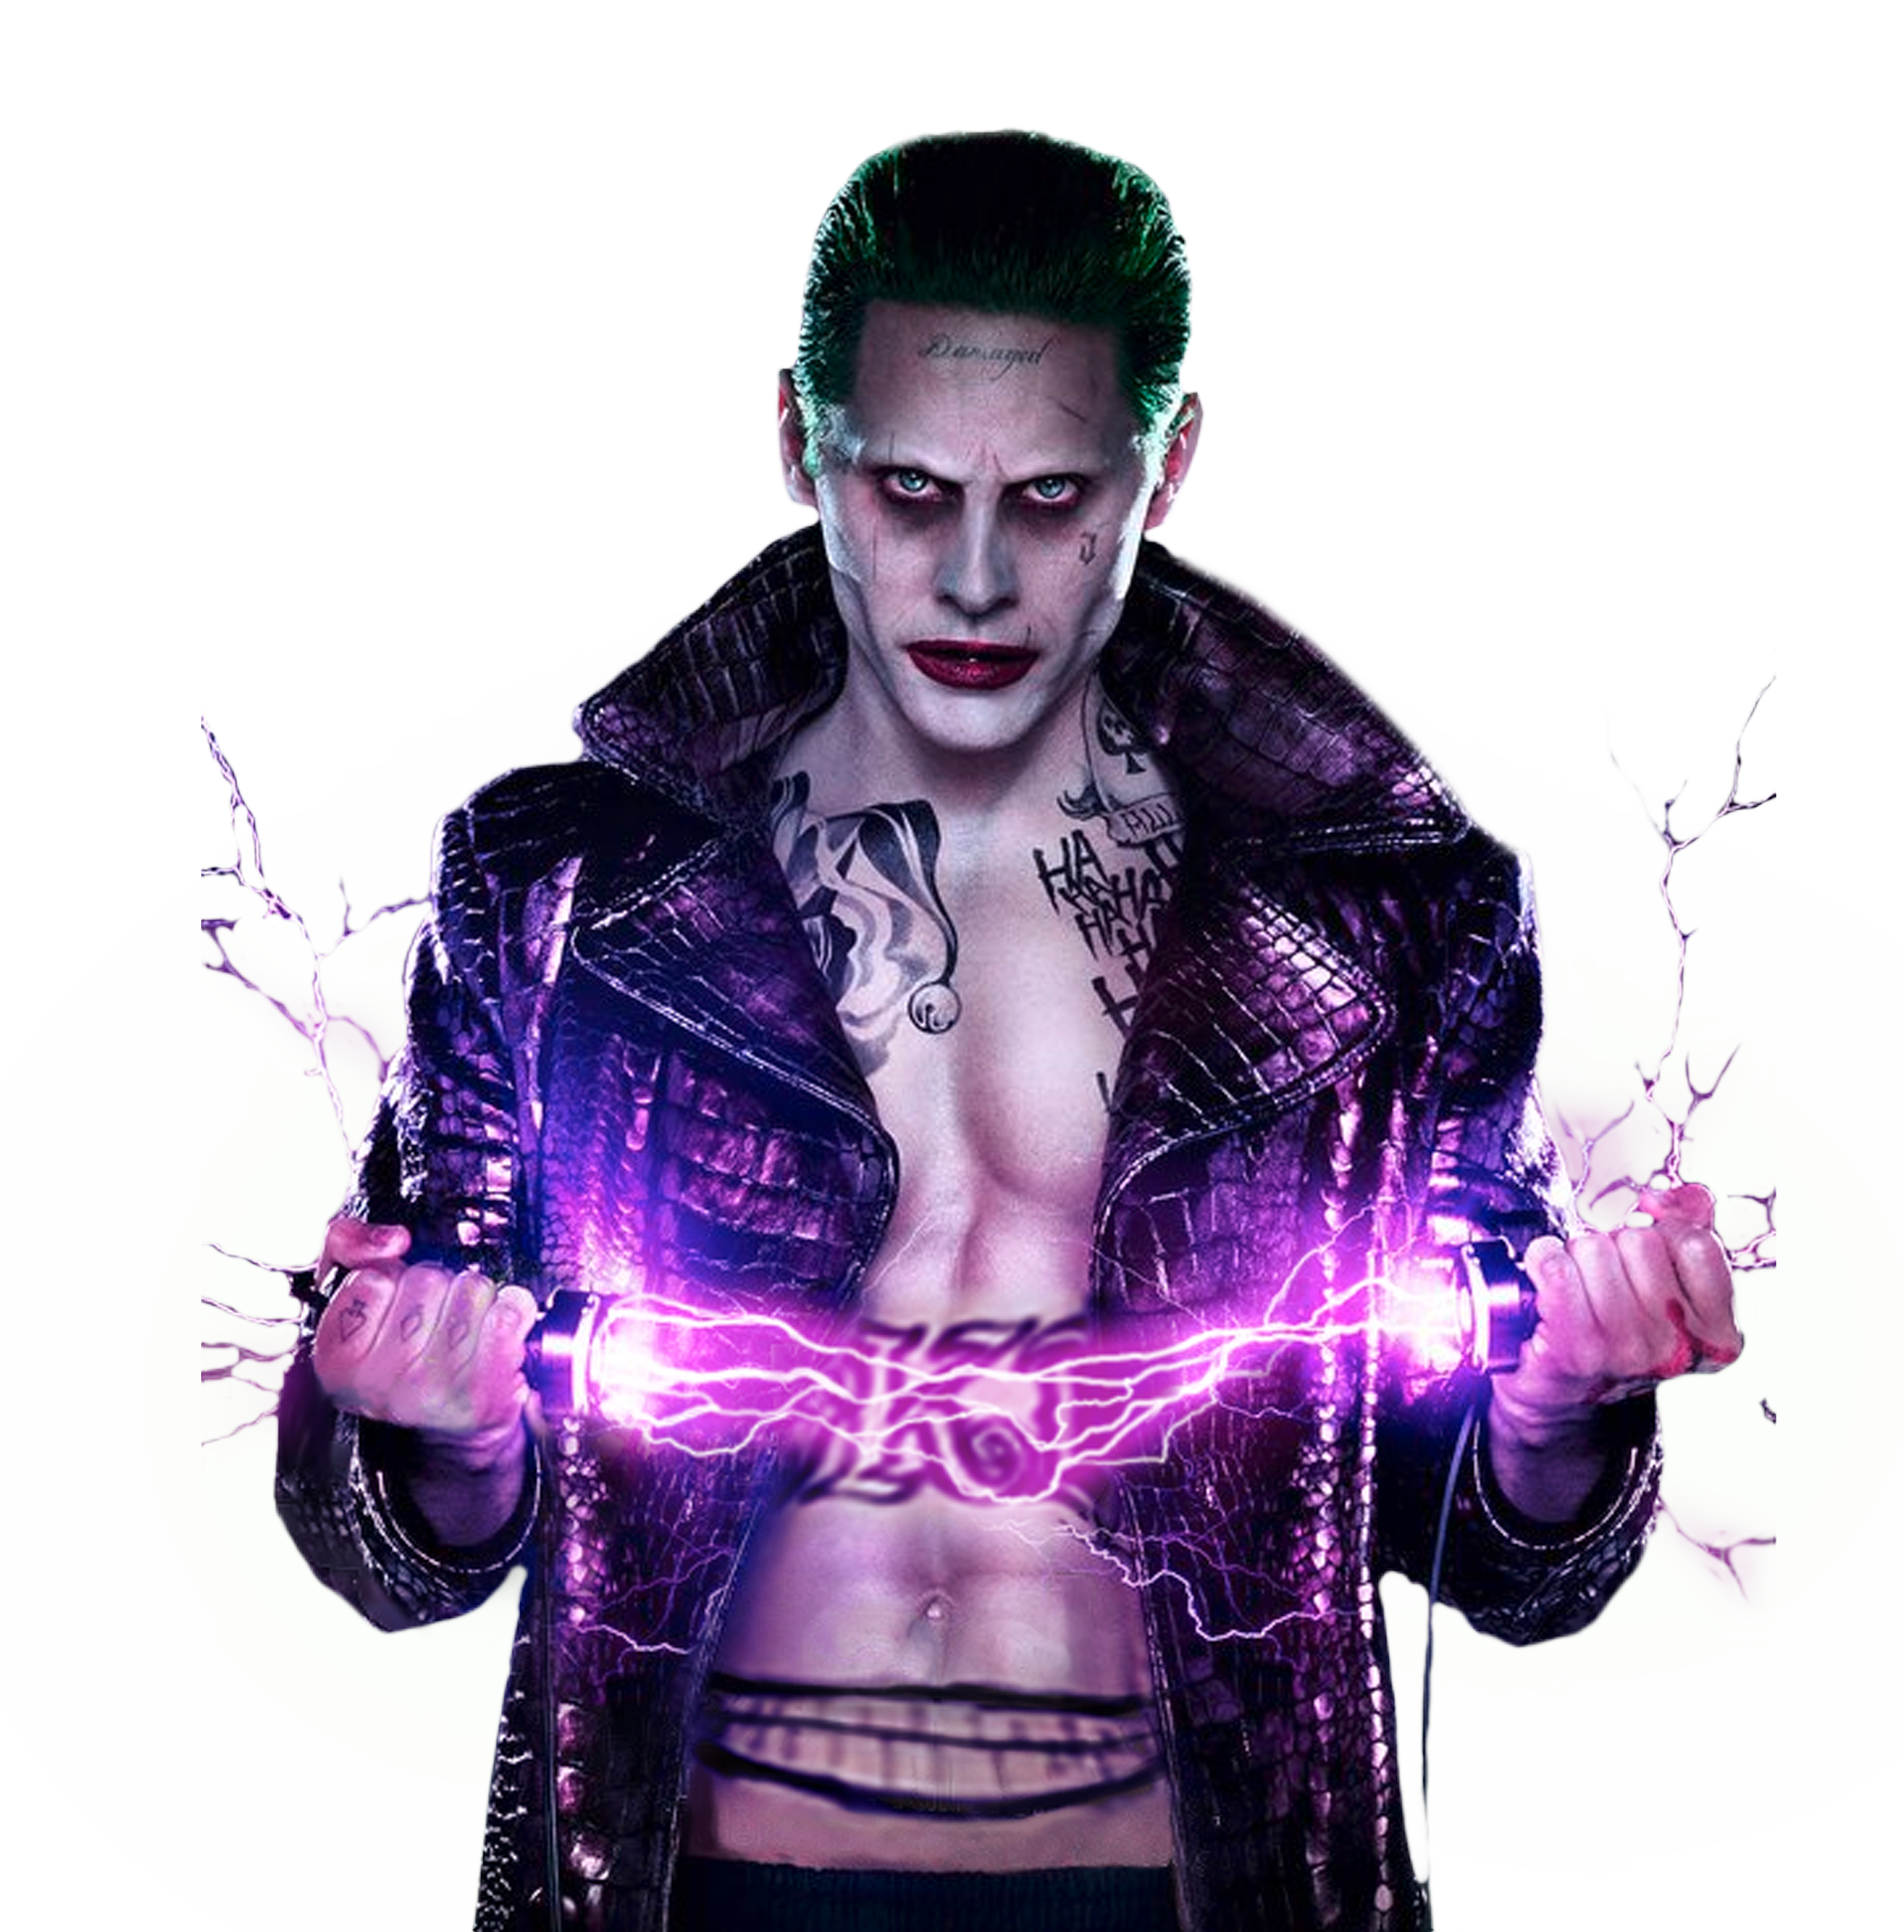 Yoworld Forums View Topic Suicide Squad S Joker